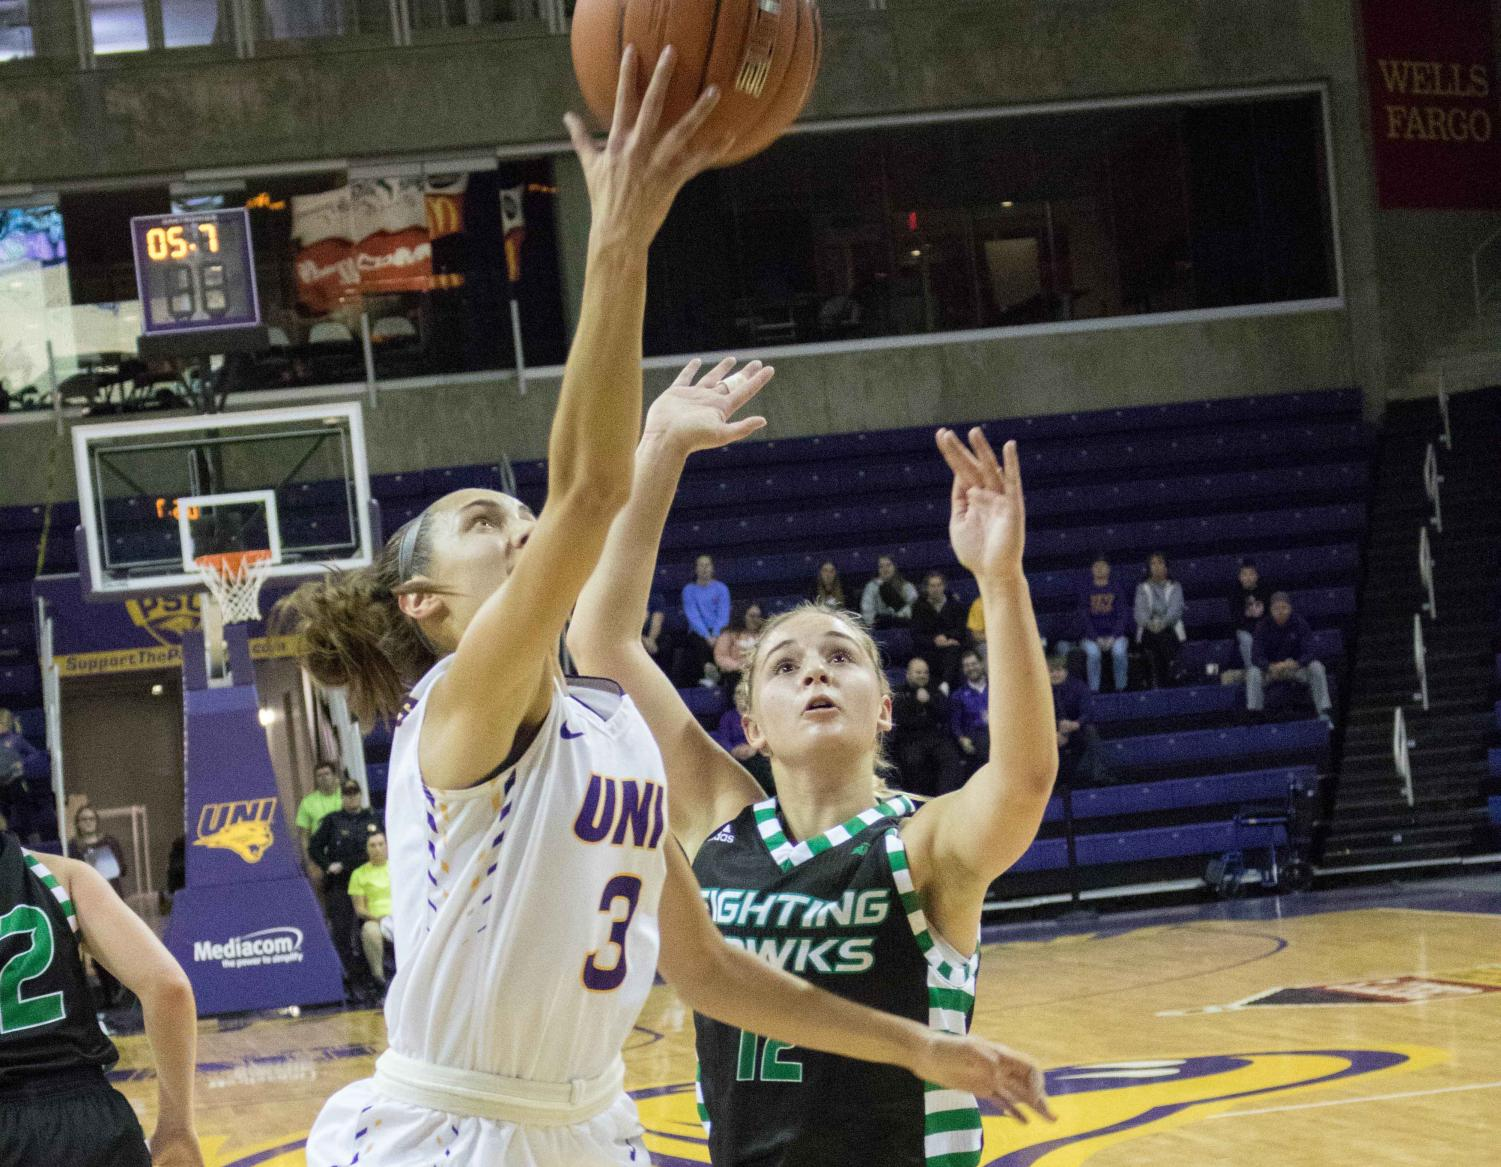 The Panther women's basketball team notched wins over the IUPUI Jaguars and North Dakota Fighting Hawks over the past week.